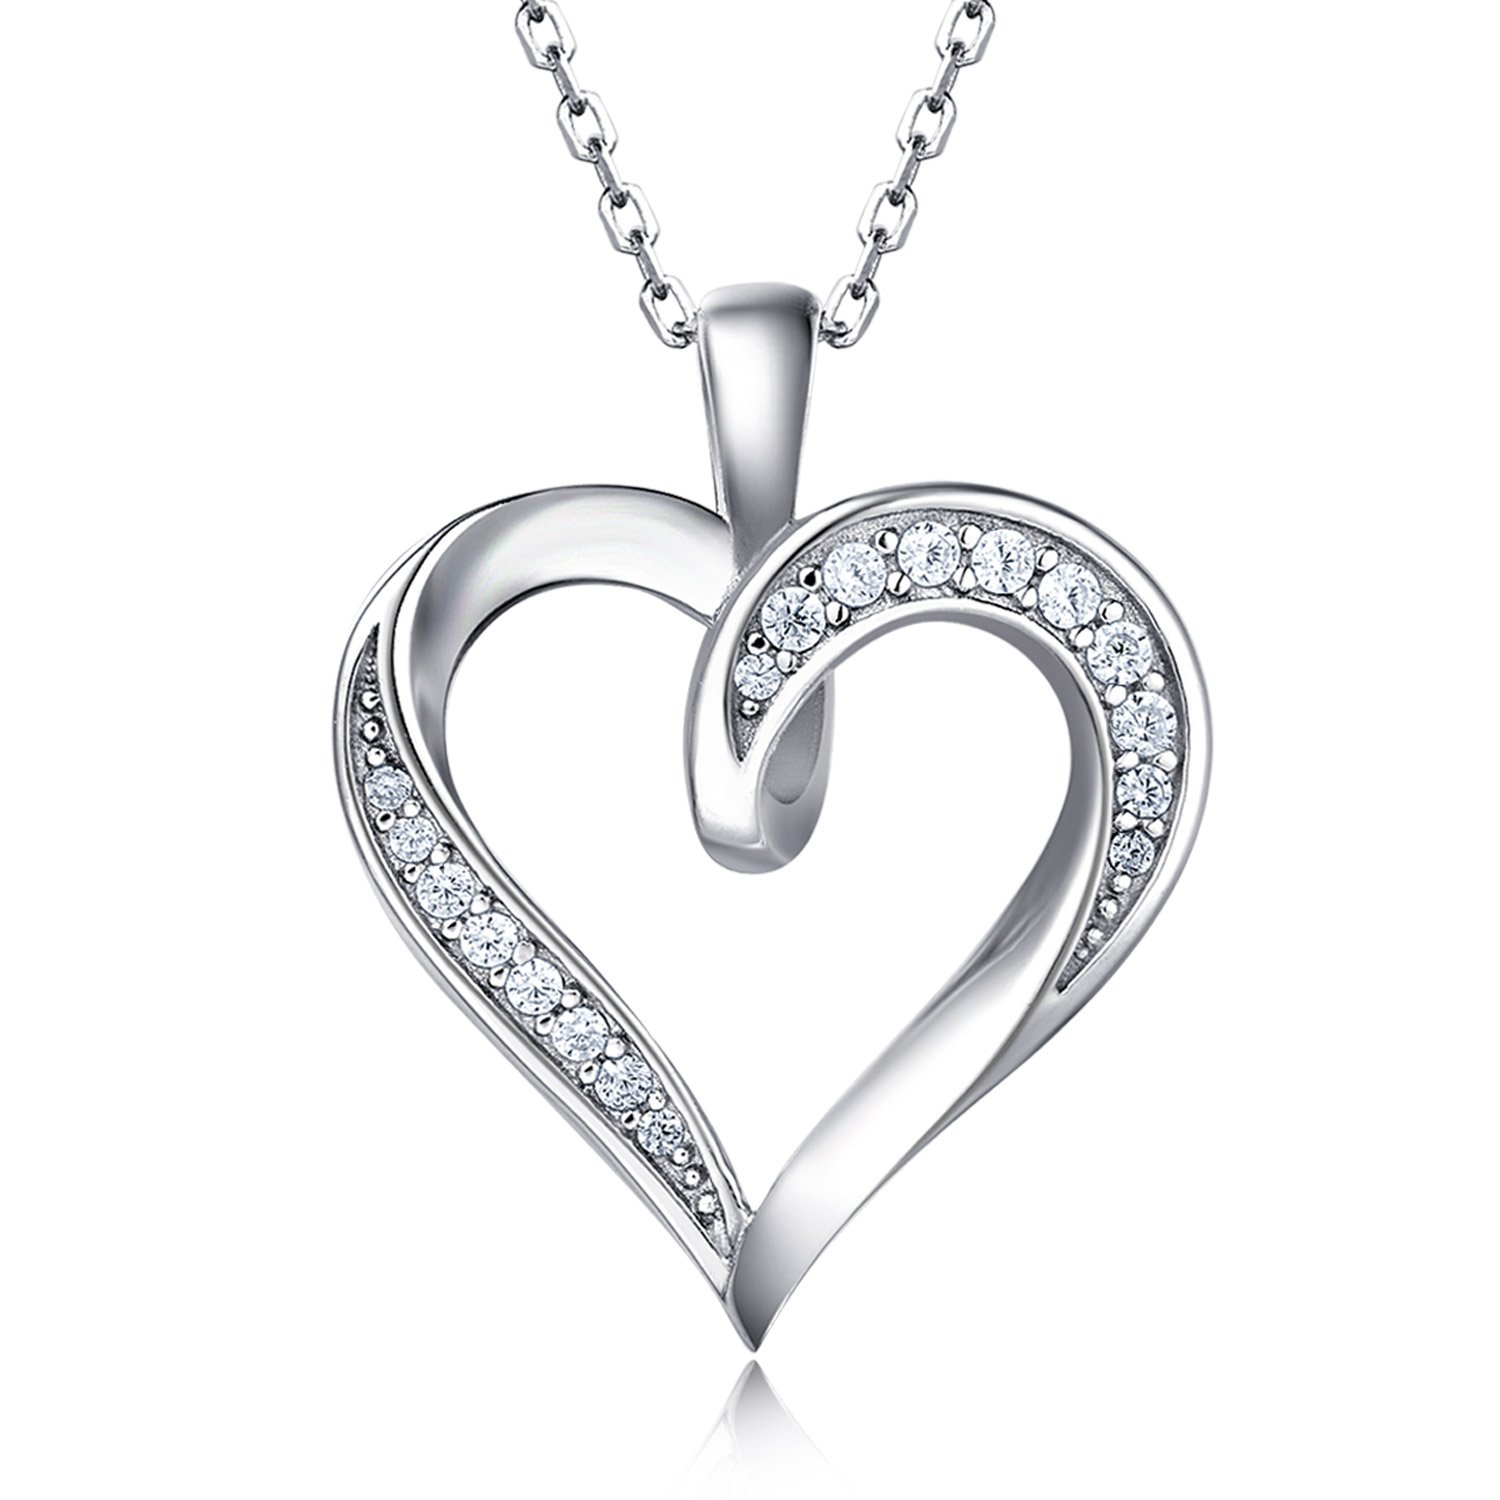 Billie Bijoux 925 Sterling Silver Infinity Love Heart Necklace Platinum Plated Round CZ Diamond Fine Woman's jewelry 18''